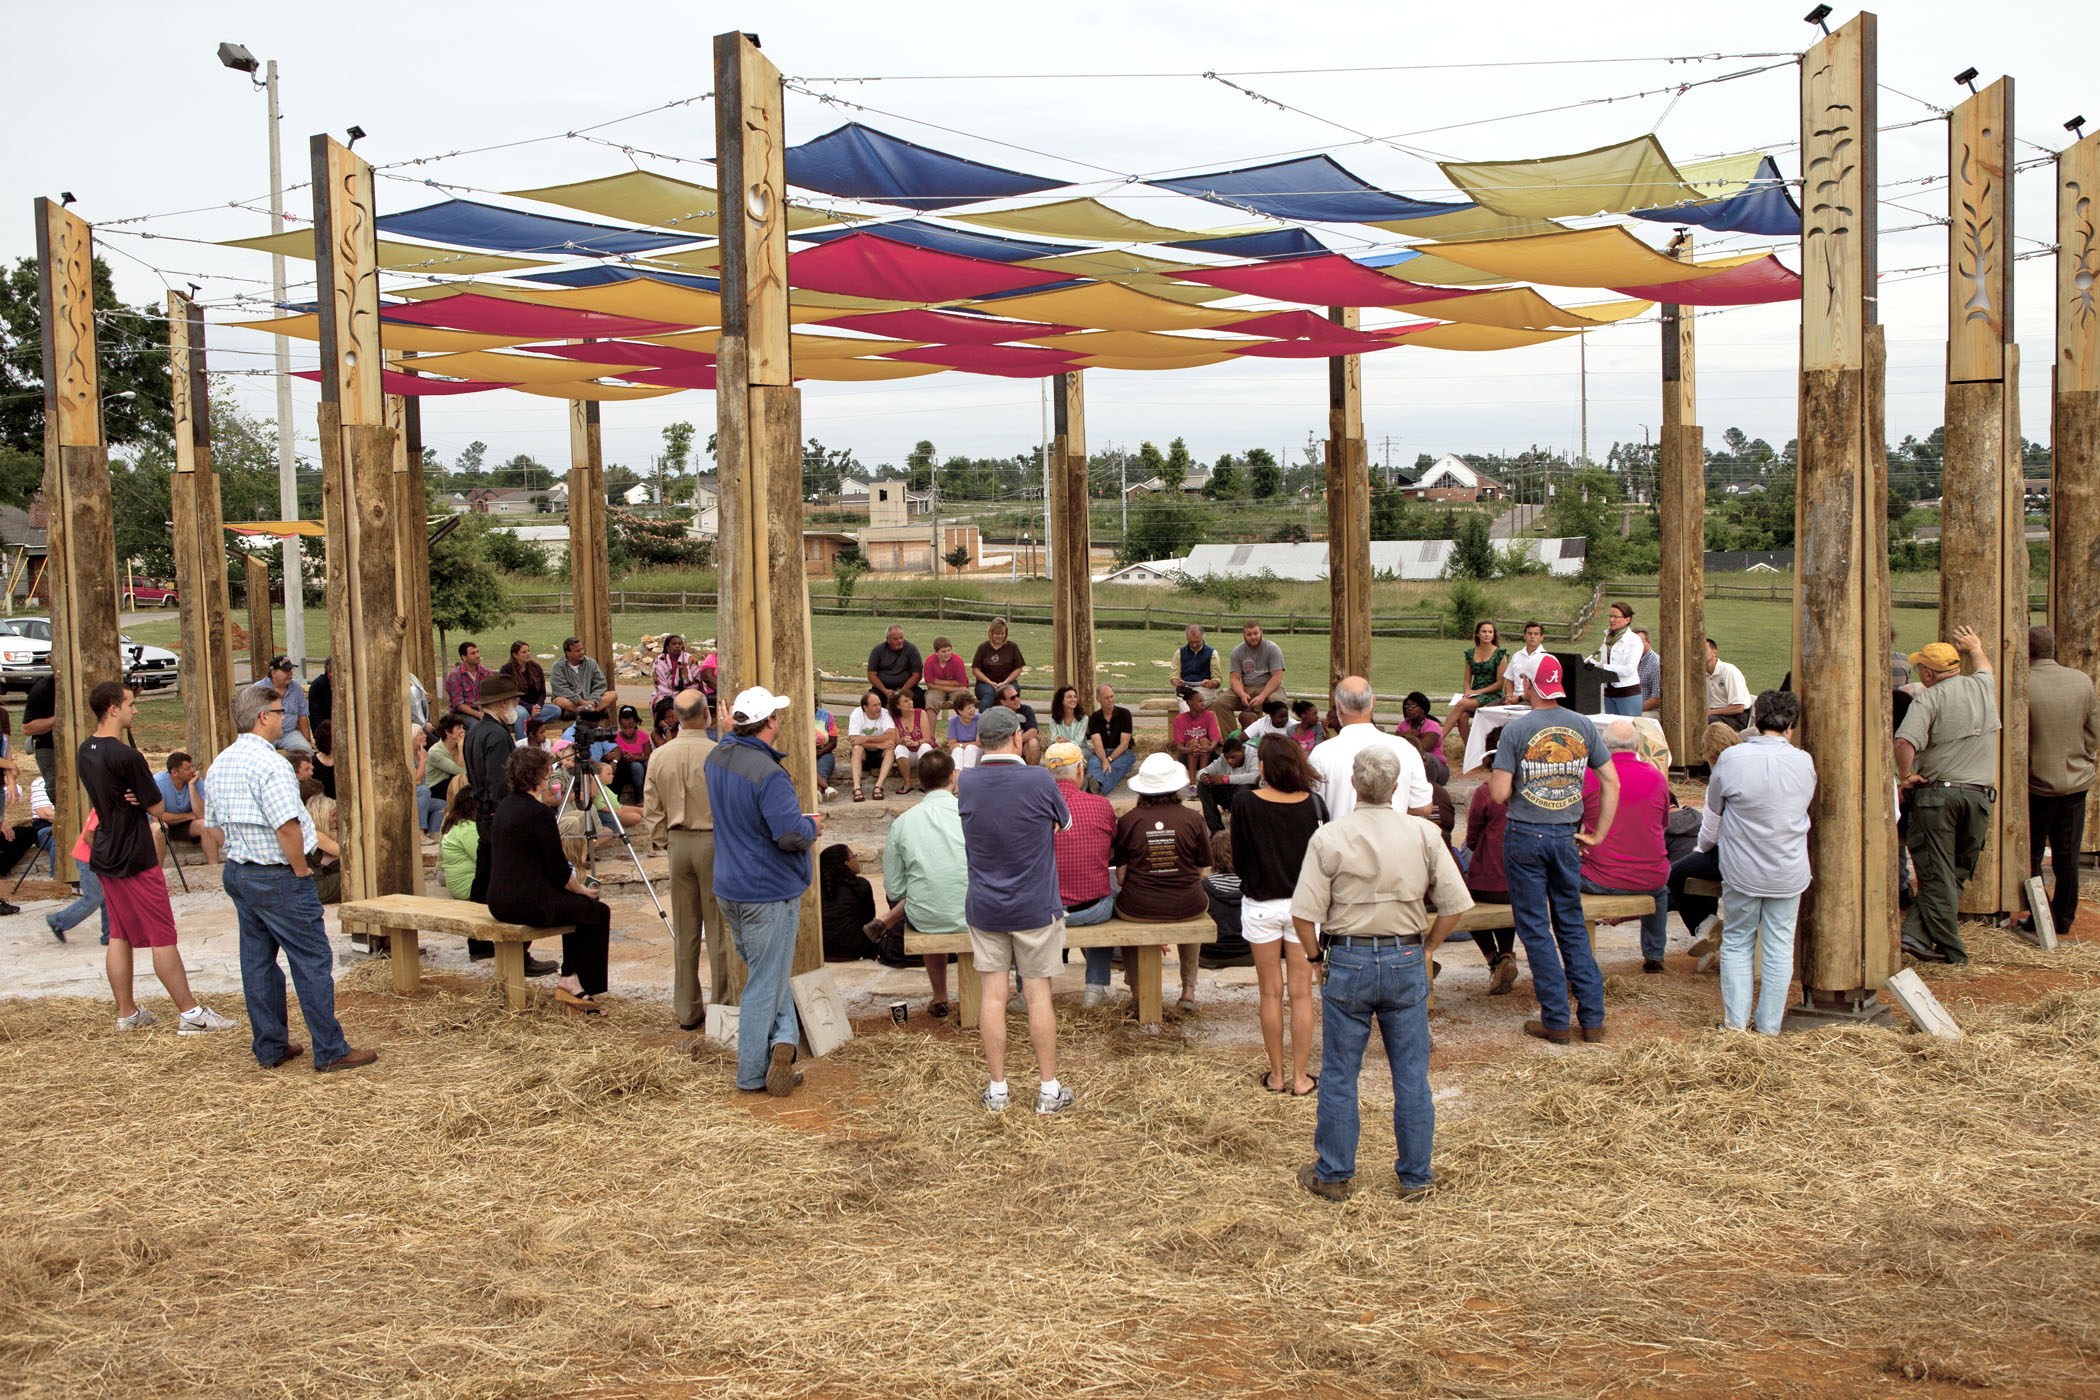 Volunteers helped build the Alberta Gathering Place in Tuscaloosa, Alabama, with the help of Seattle's Pomegranate Center and Tully's Coffee.